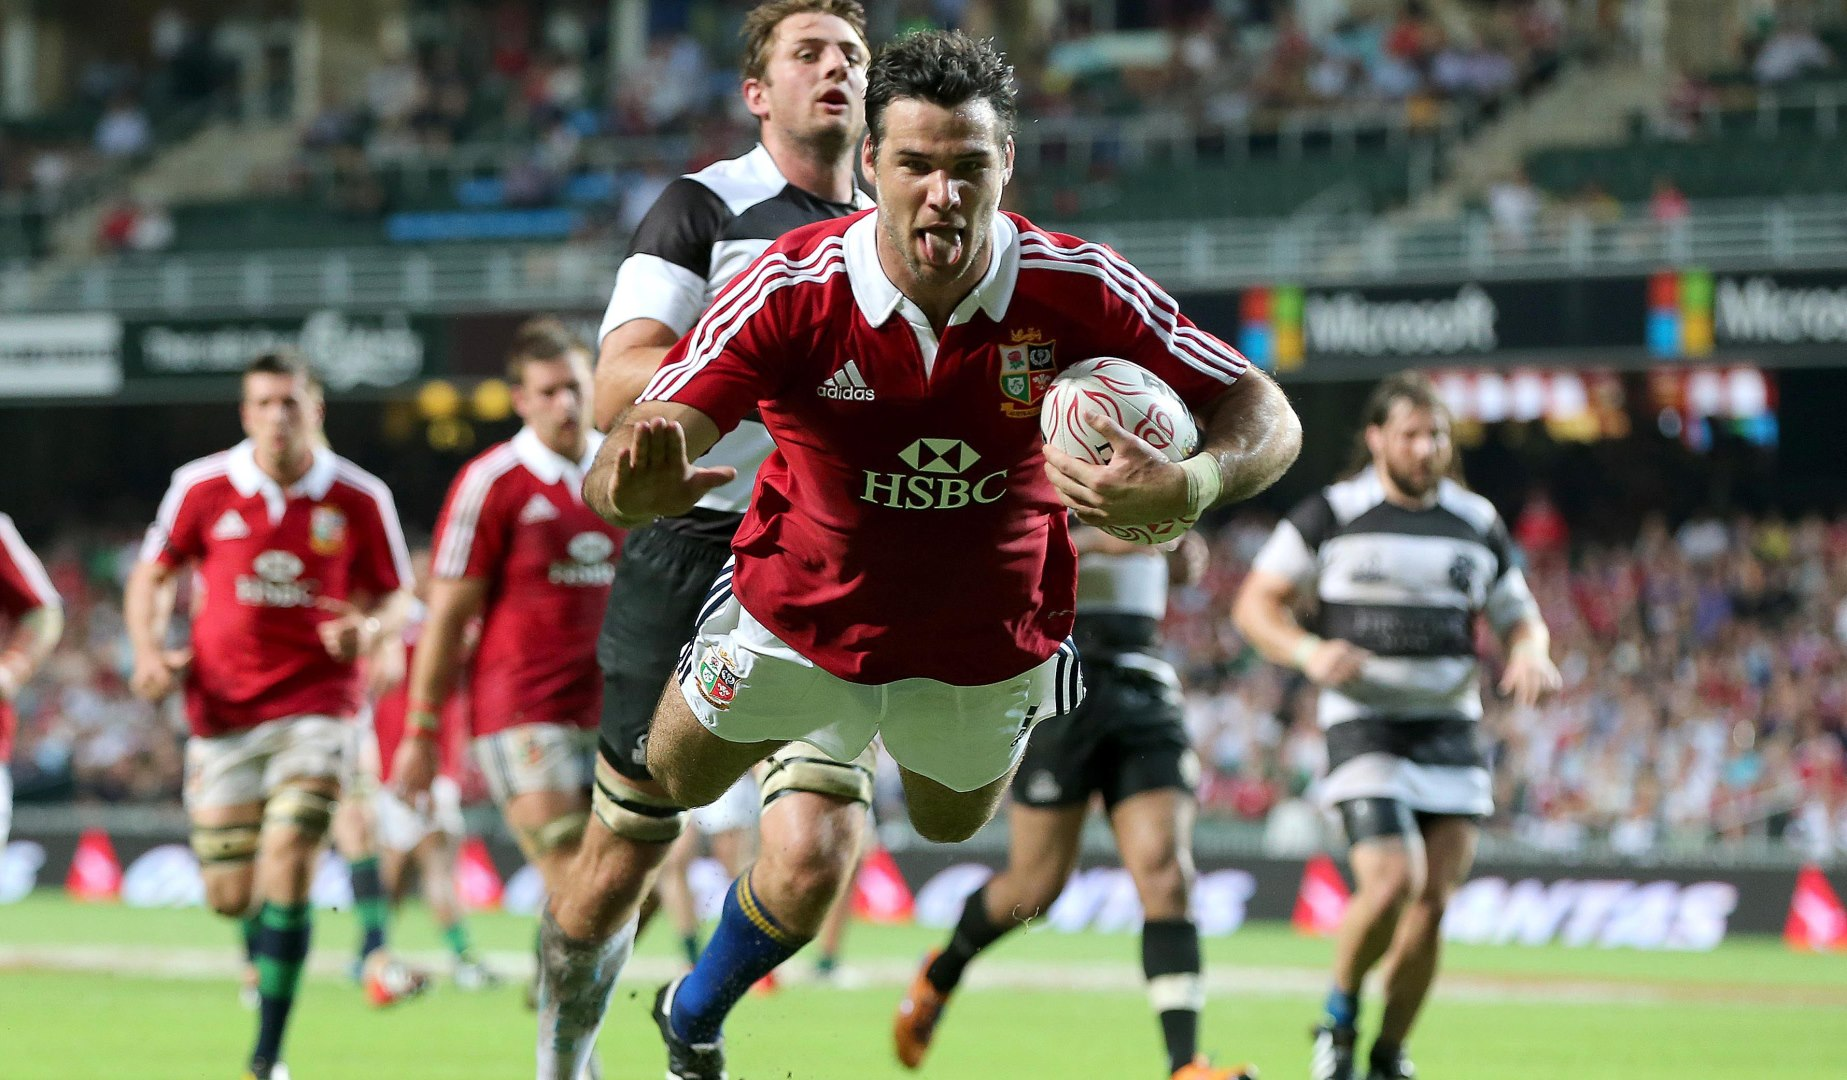 Two-time Tourist Mike Phillips retires from professional rugby